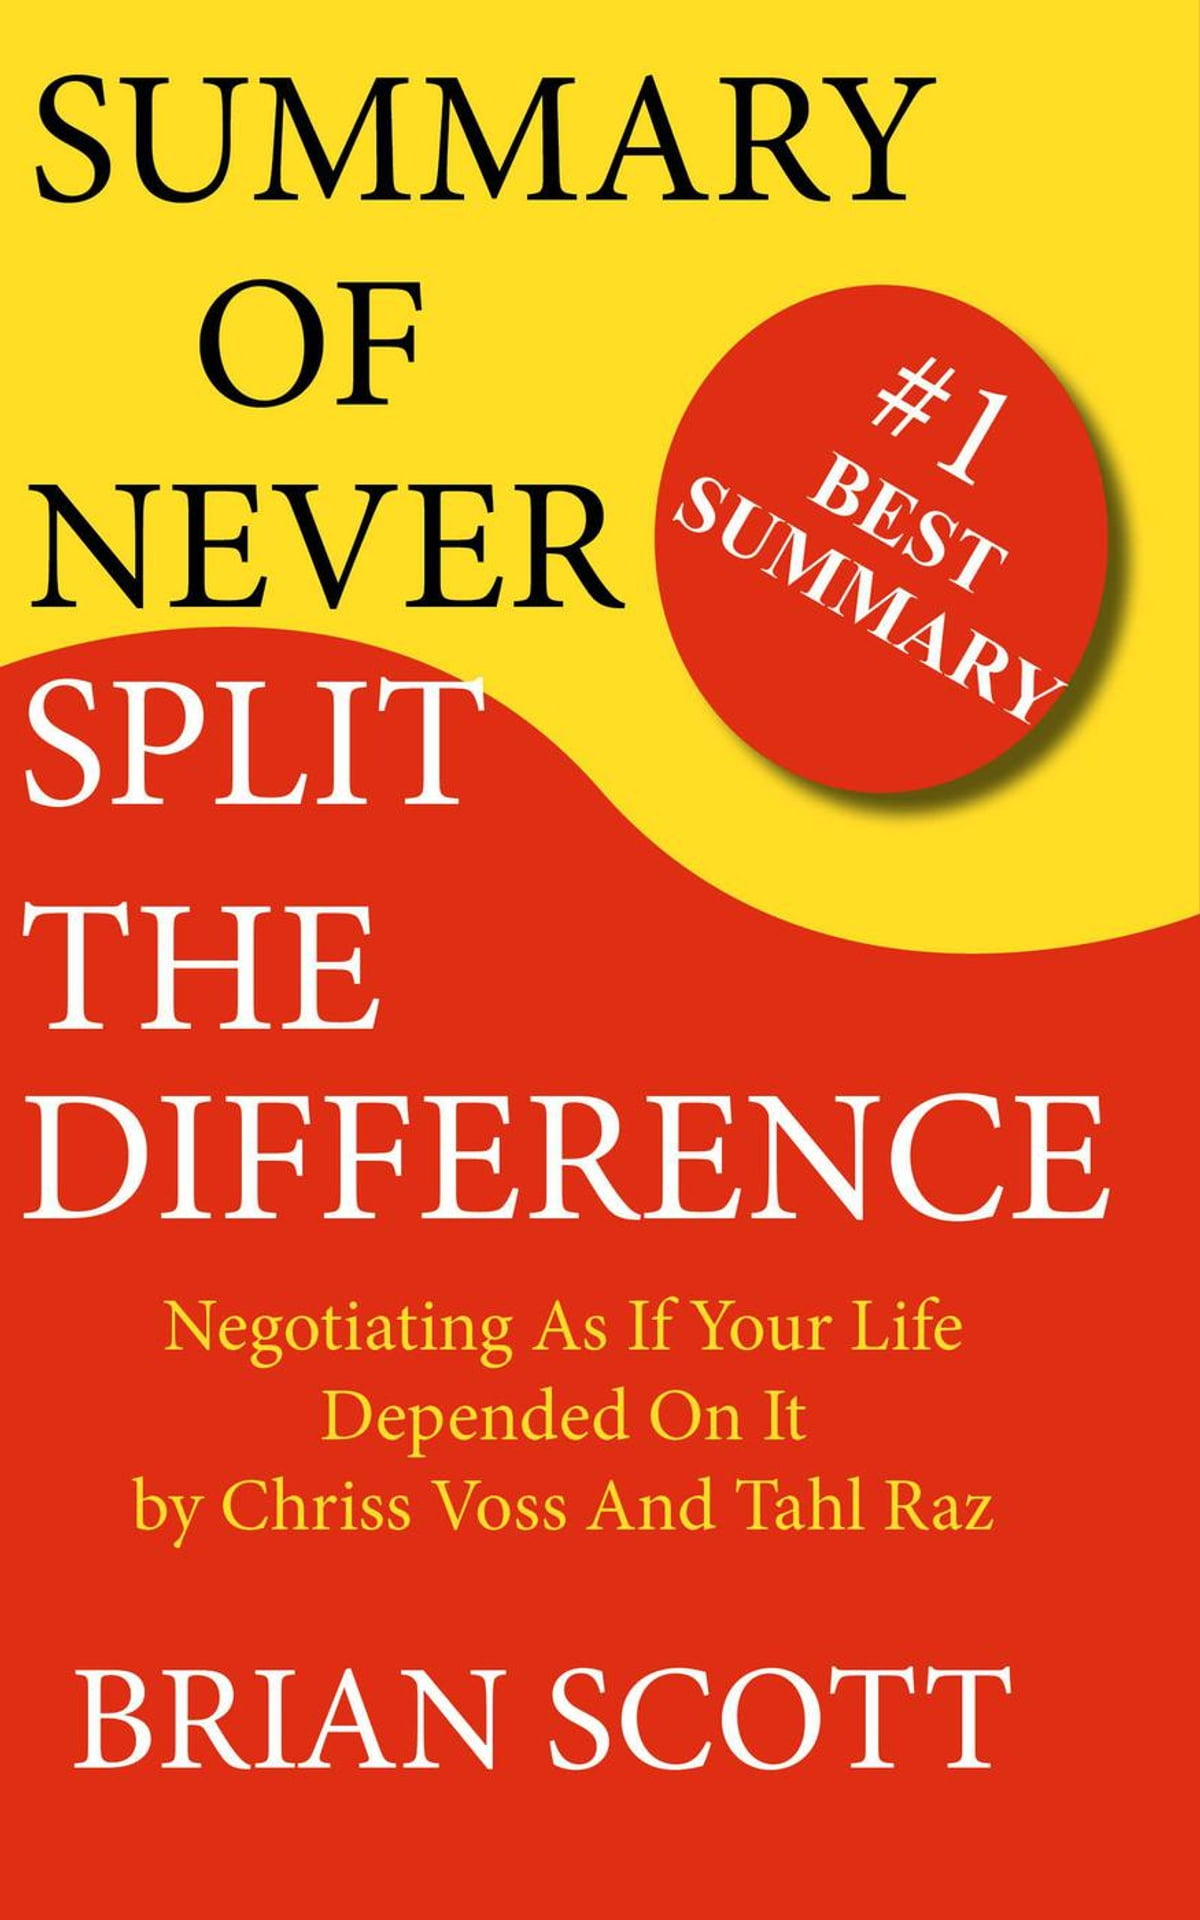 Summary of Never Split The Difference: Negotiating As If Your Life Depended  On It by Chris Voss and Tahl Raz eBook by Brian Scott - 9781386702191 |  Rakuten ...